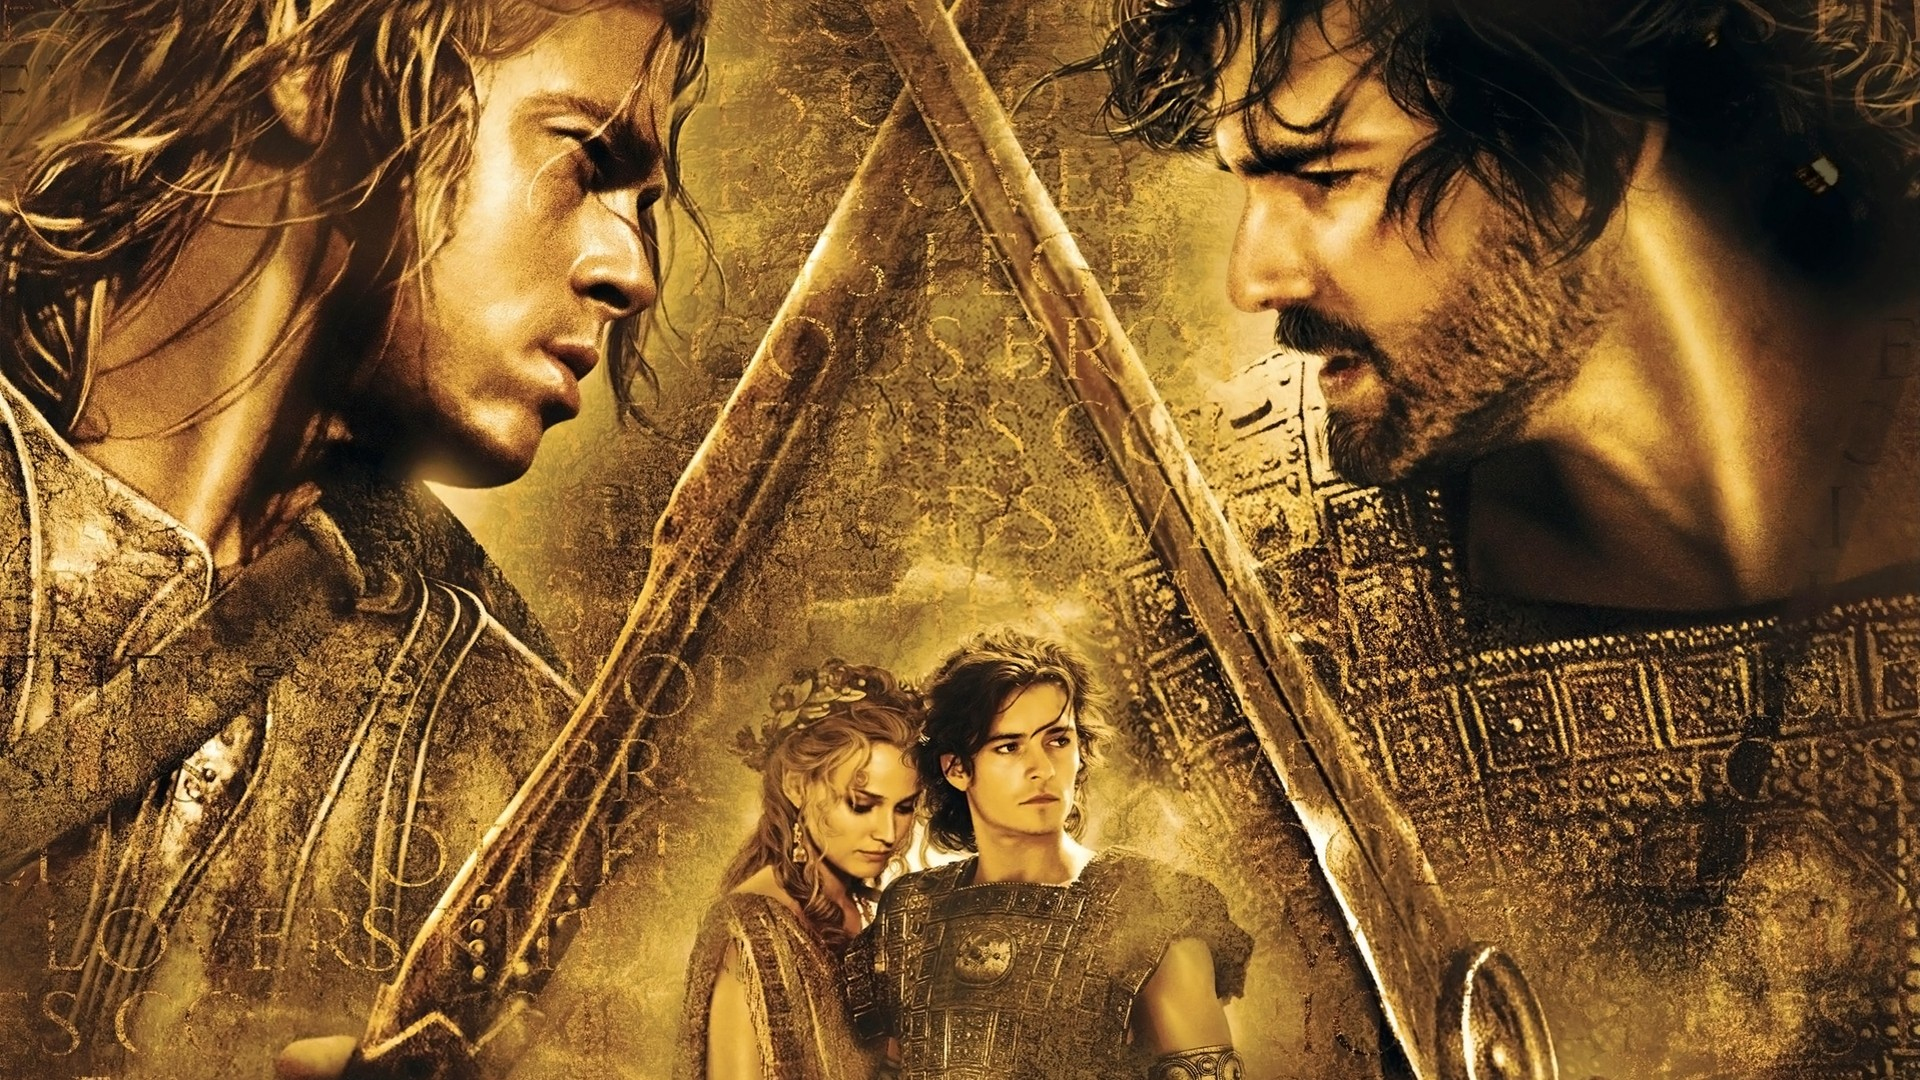 Paris Movies Brad Pitt Troy Achilles Hector Helen Of Troy Hd Wallpaper View Resize And Free Download Wallpaperjam Com